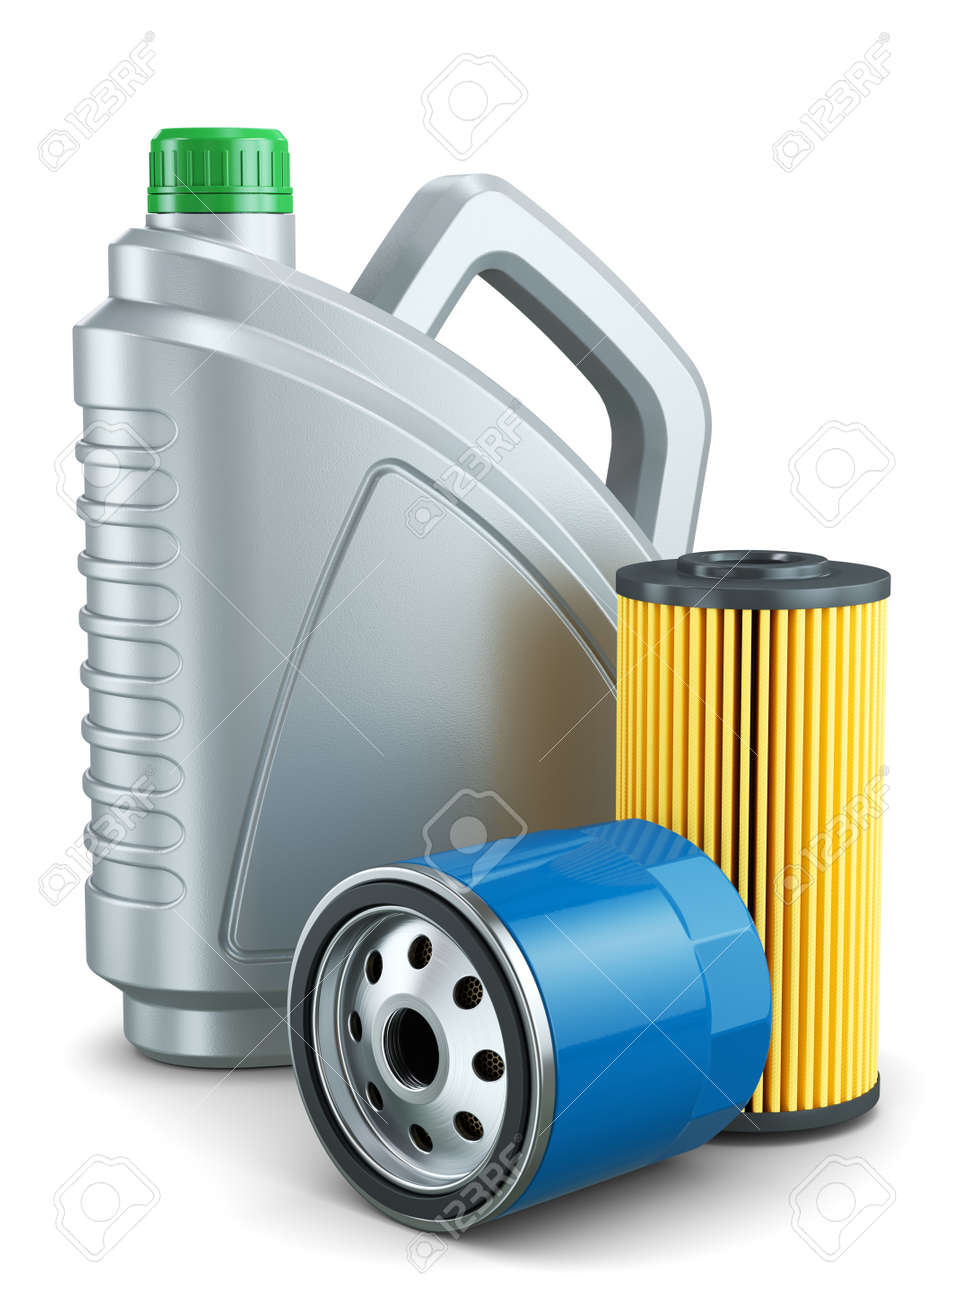 Car oil filters and motor oil plastic can isolated on white background 3d - 79945338